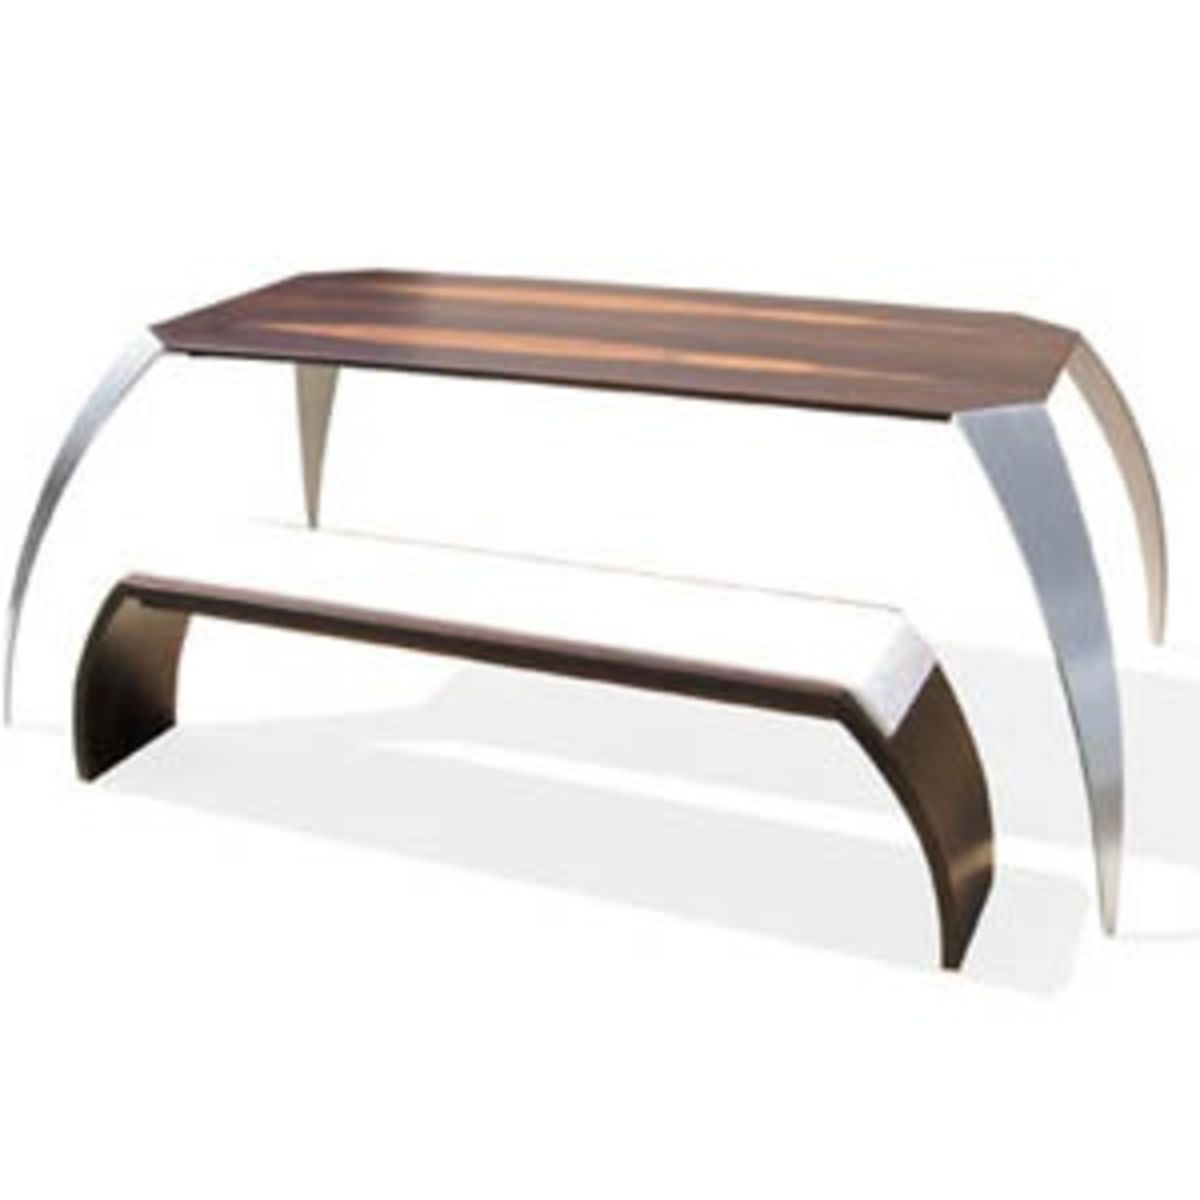 Design table and bench by Roller